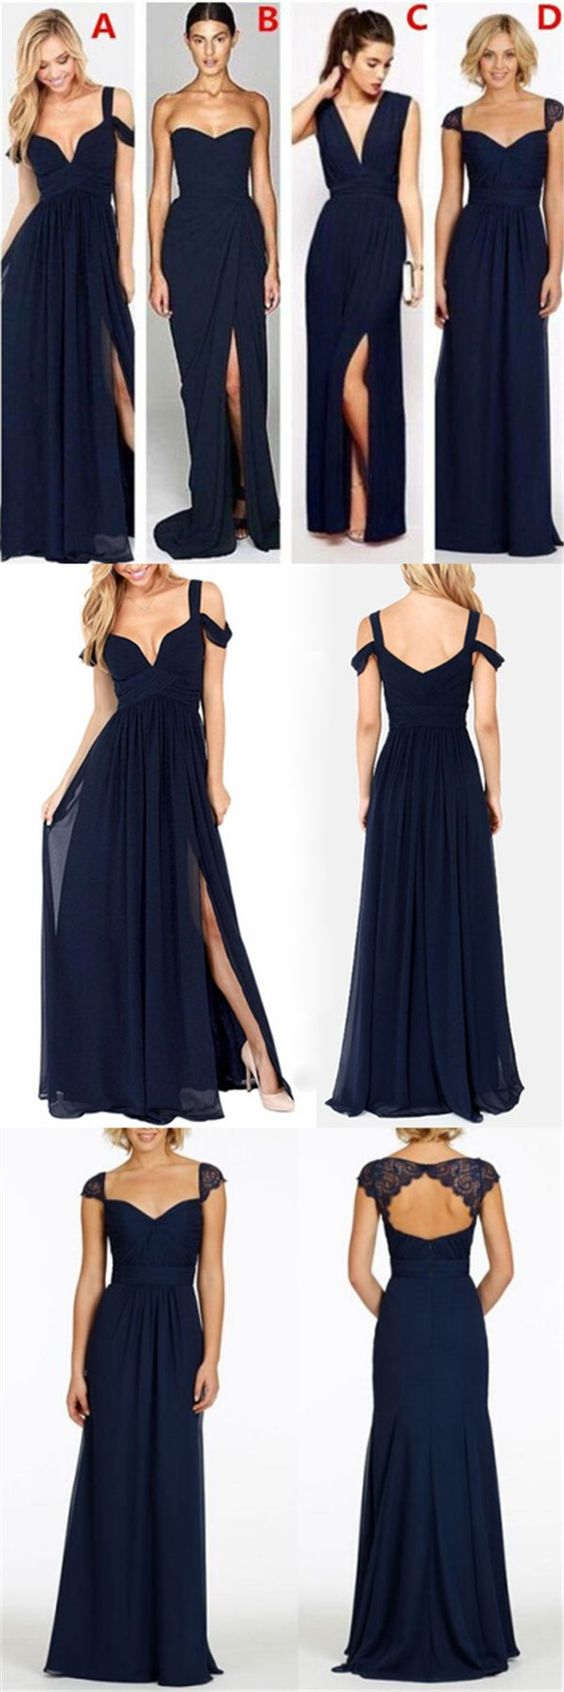 A Line Navy Blue Mismatched Side Slits Long Bridesmaid Dresses